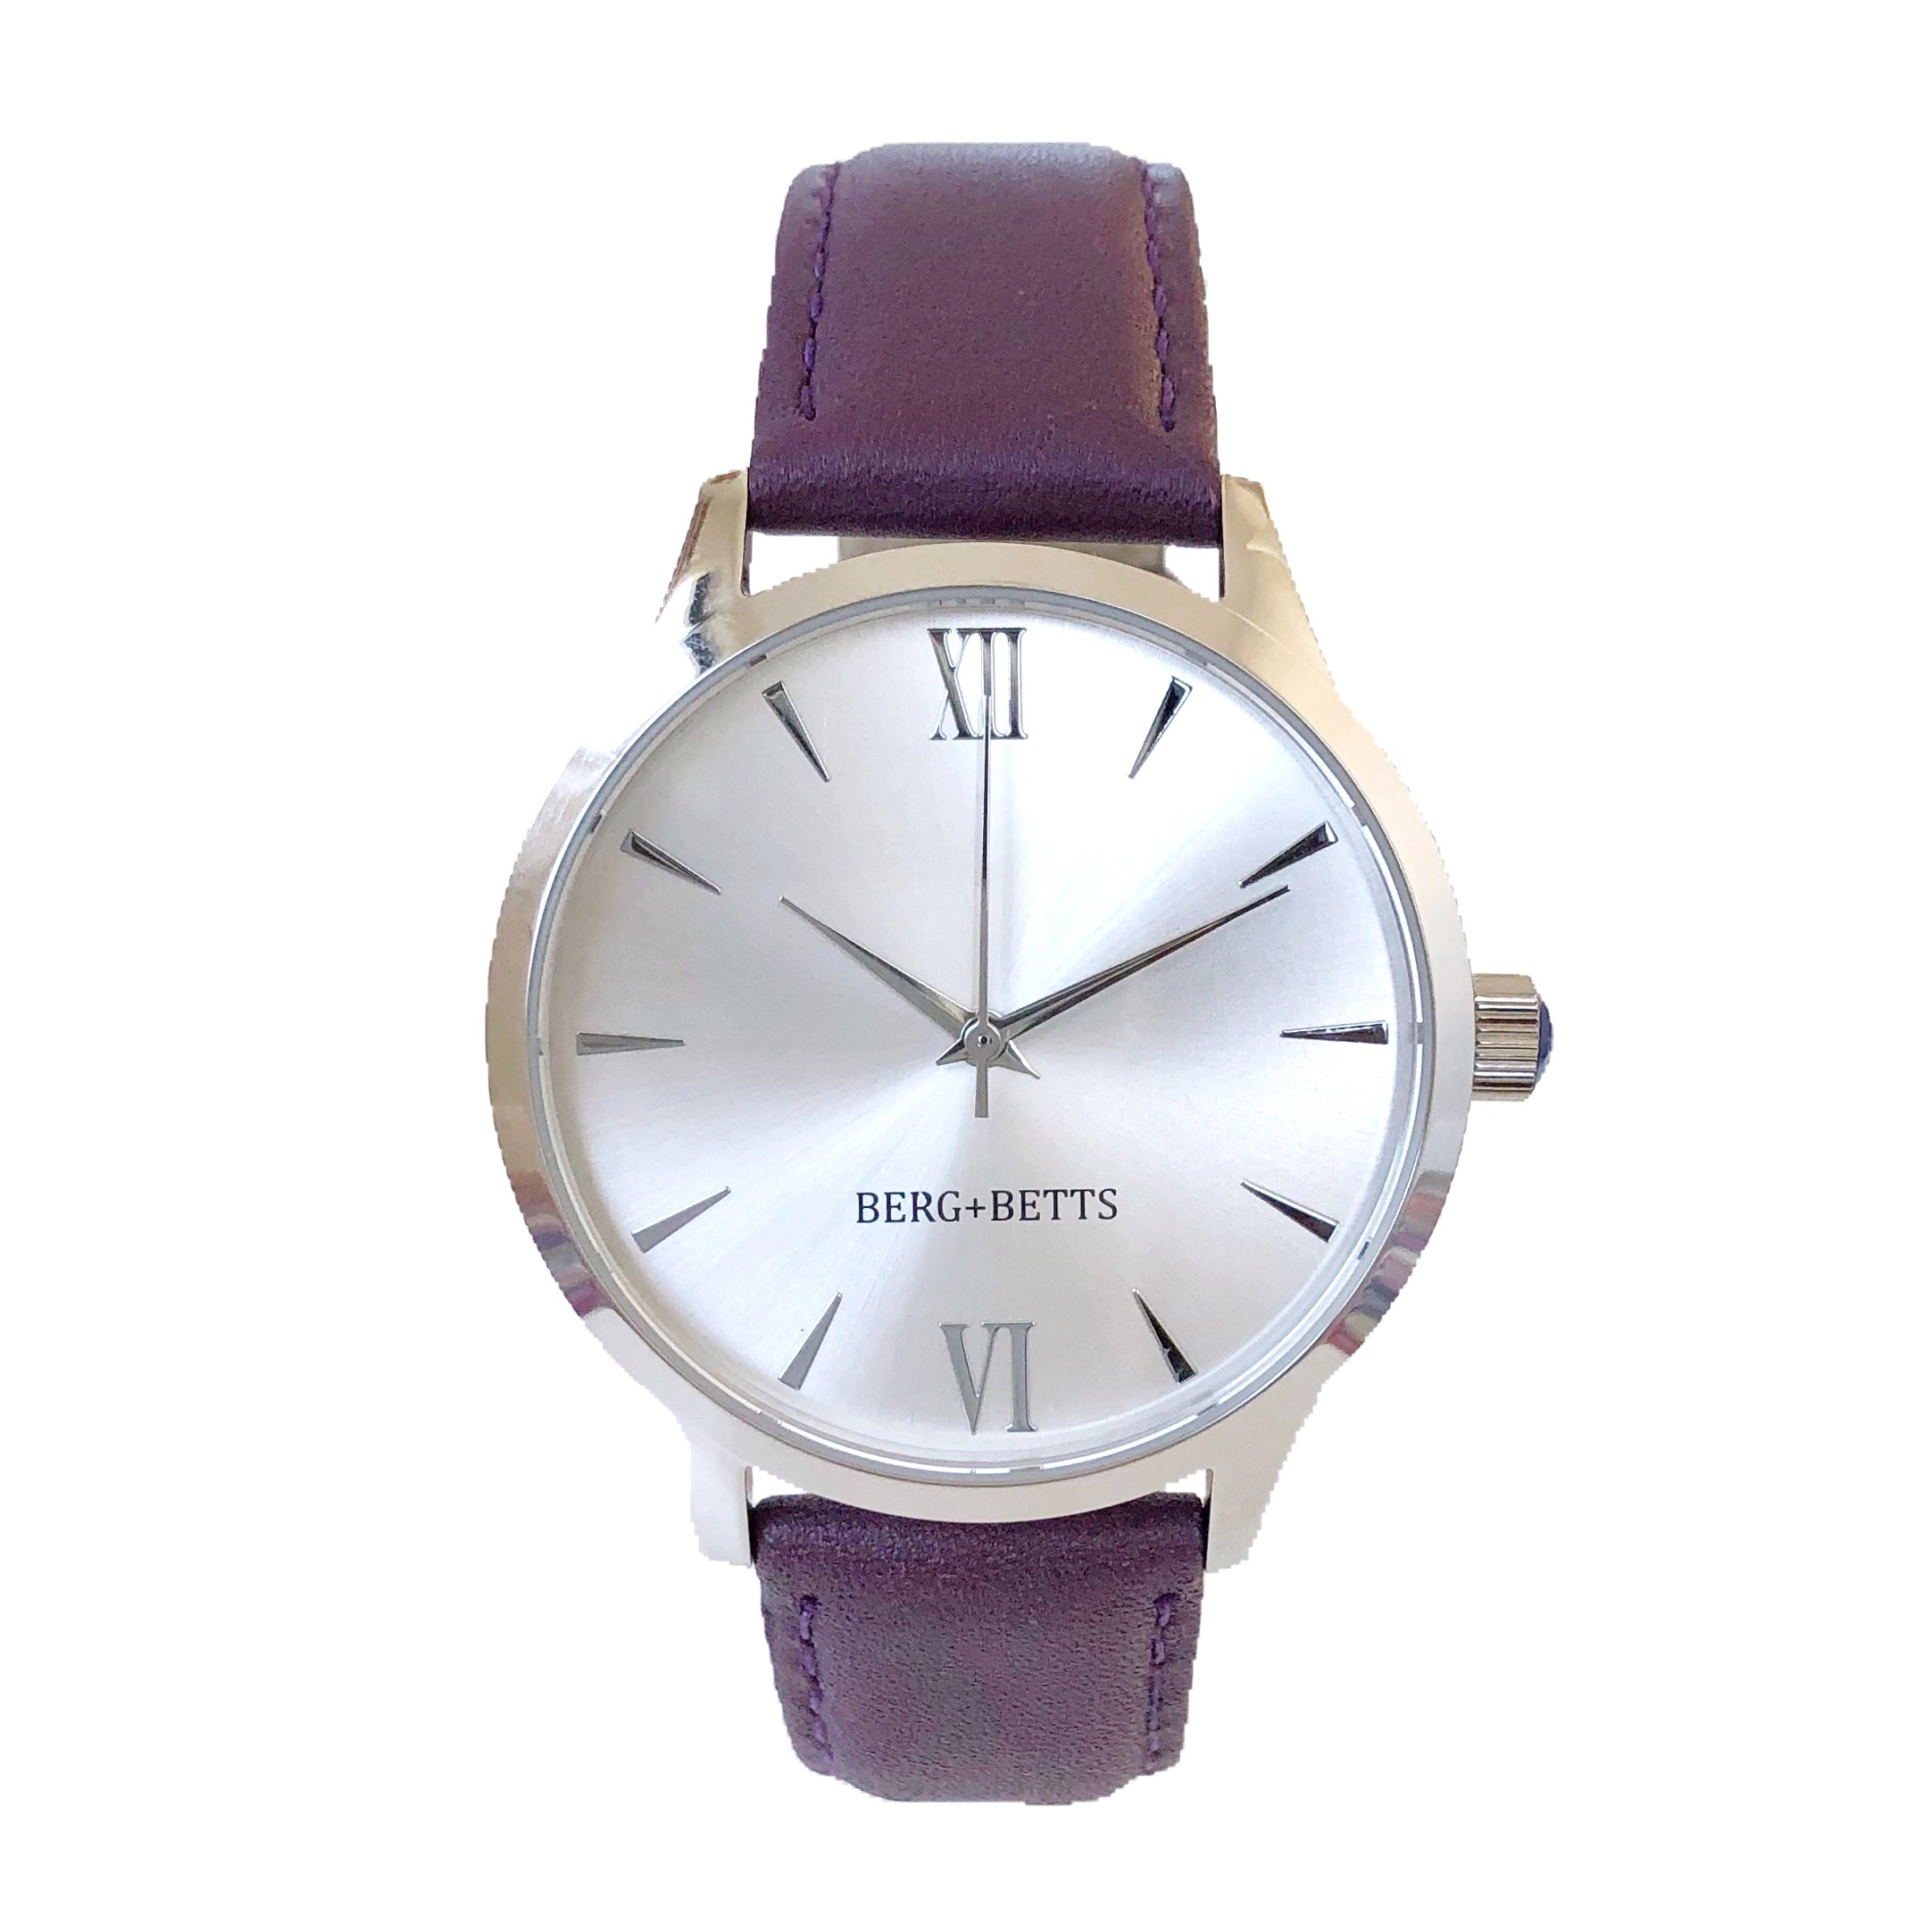 Women's ethically made and sustainable silver watch with plum interchangeable straps from BERG+BETTS